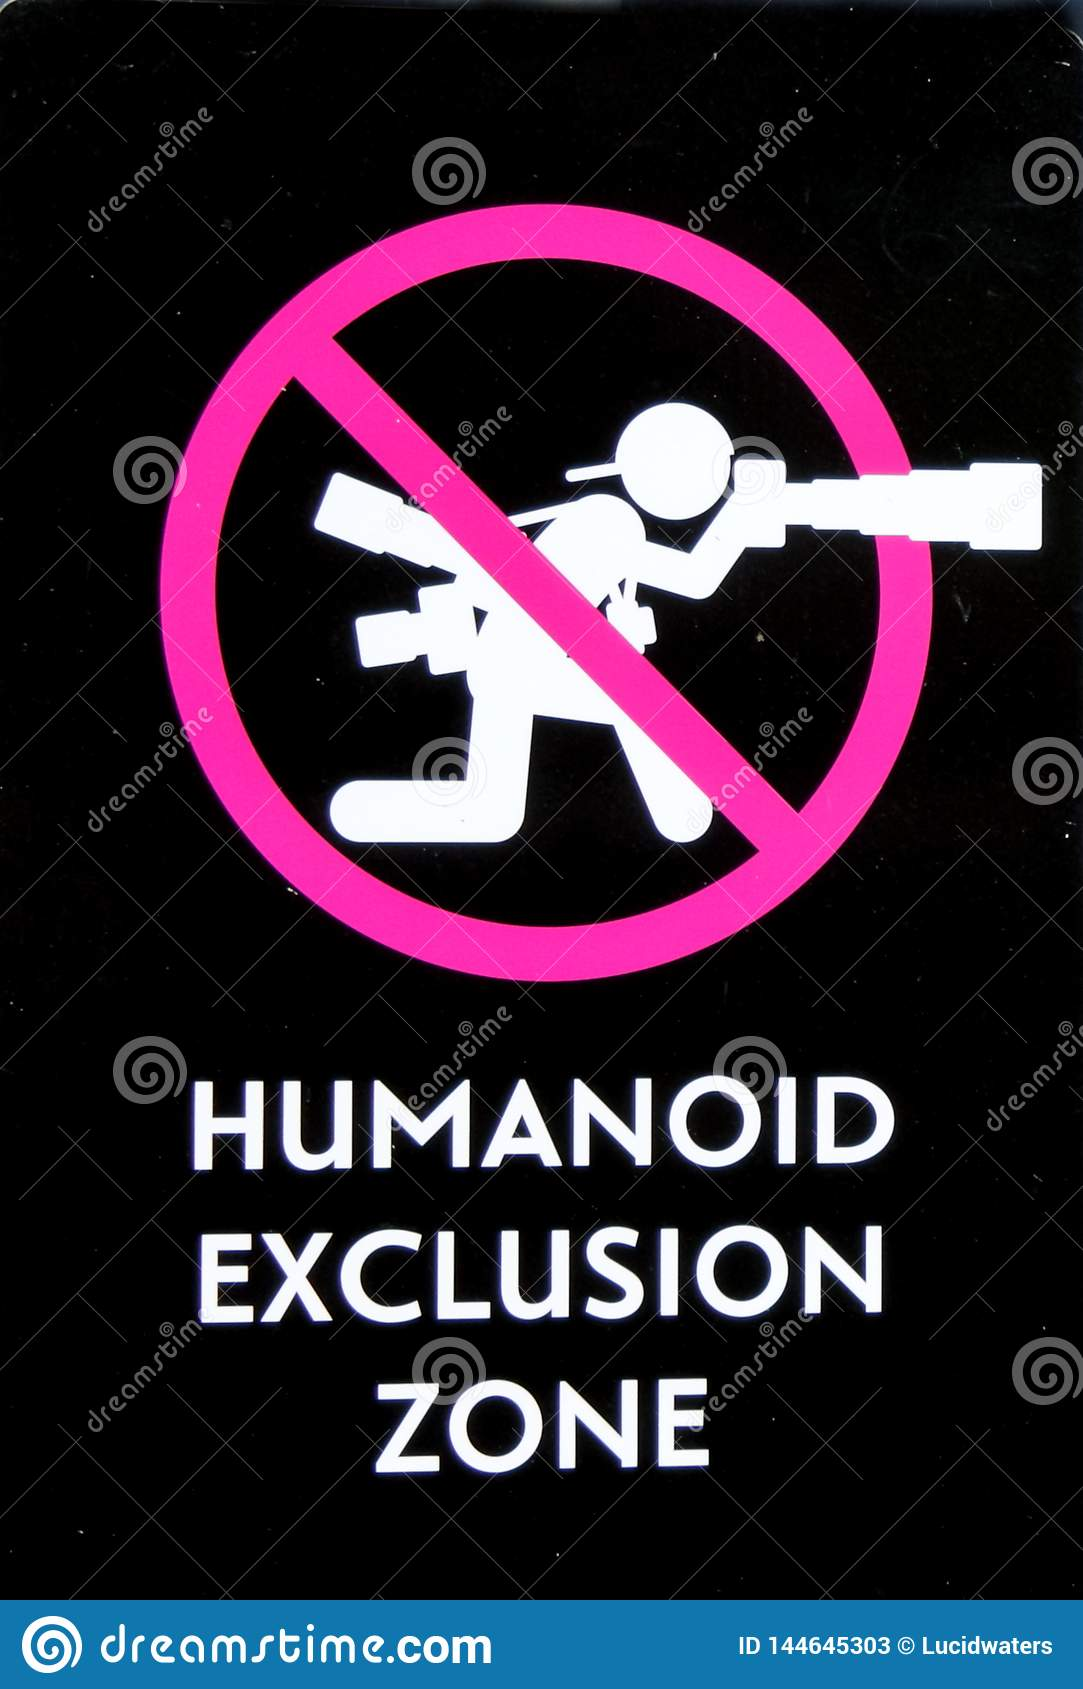 Humanoid Exclusion Zone Sign No Photography